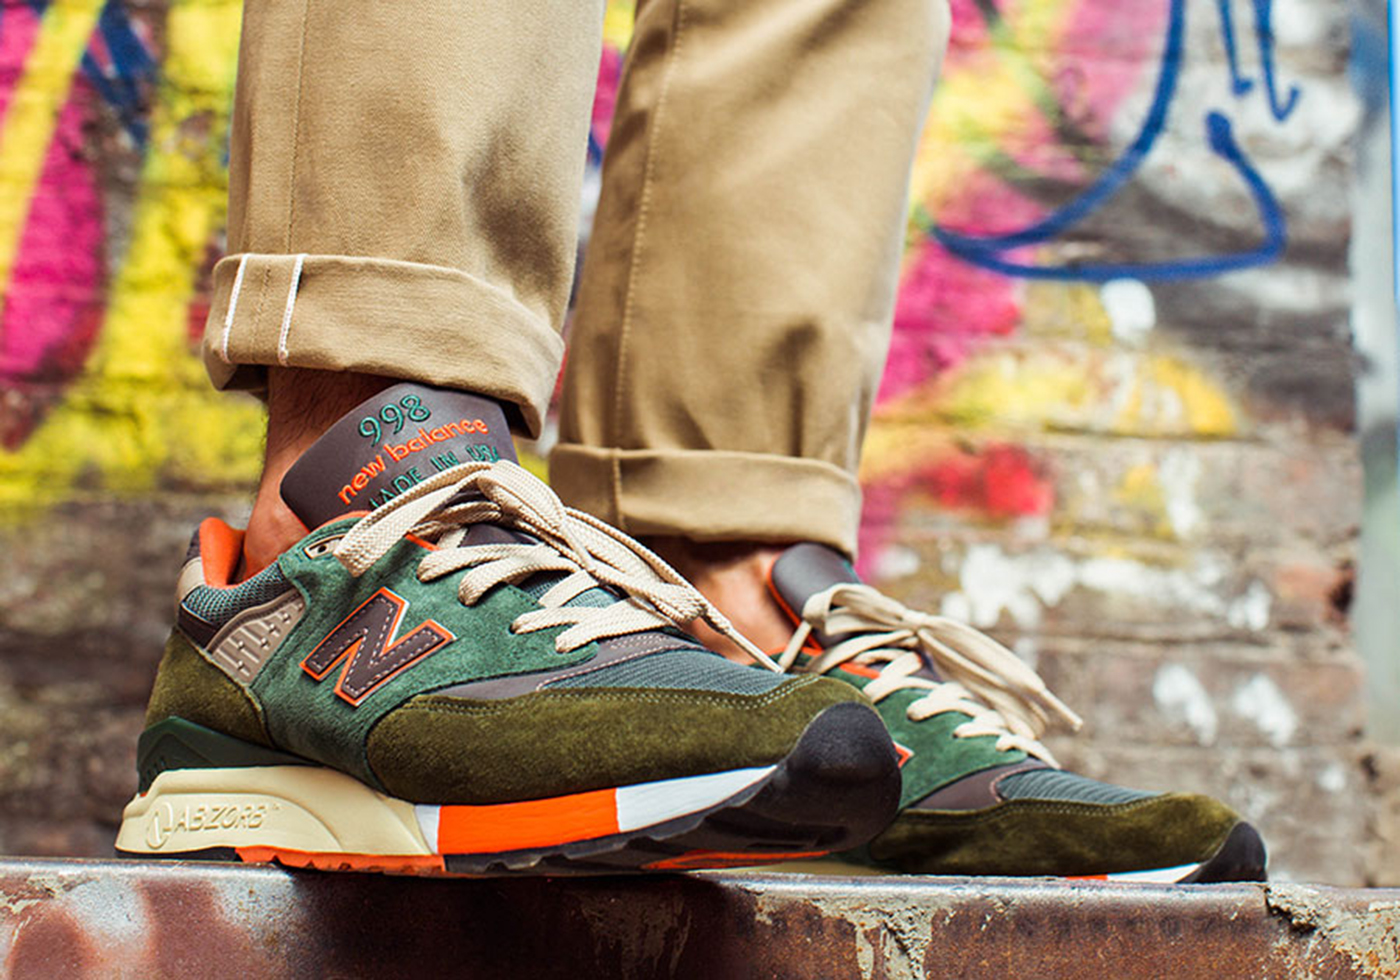 New Balance 998 - 'Concrete Jungle'